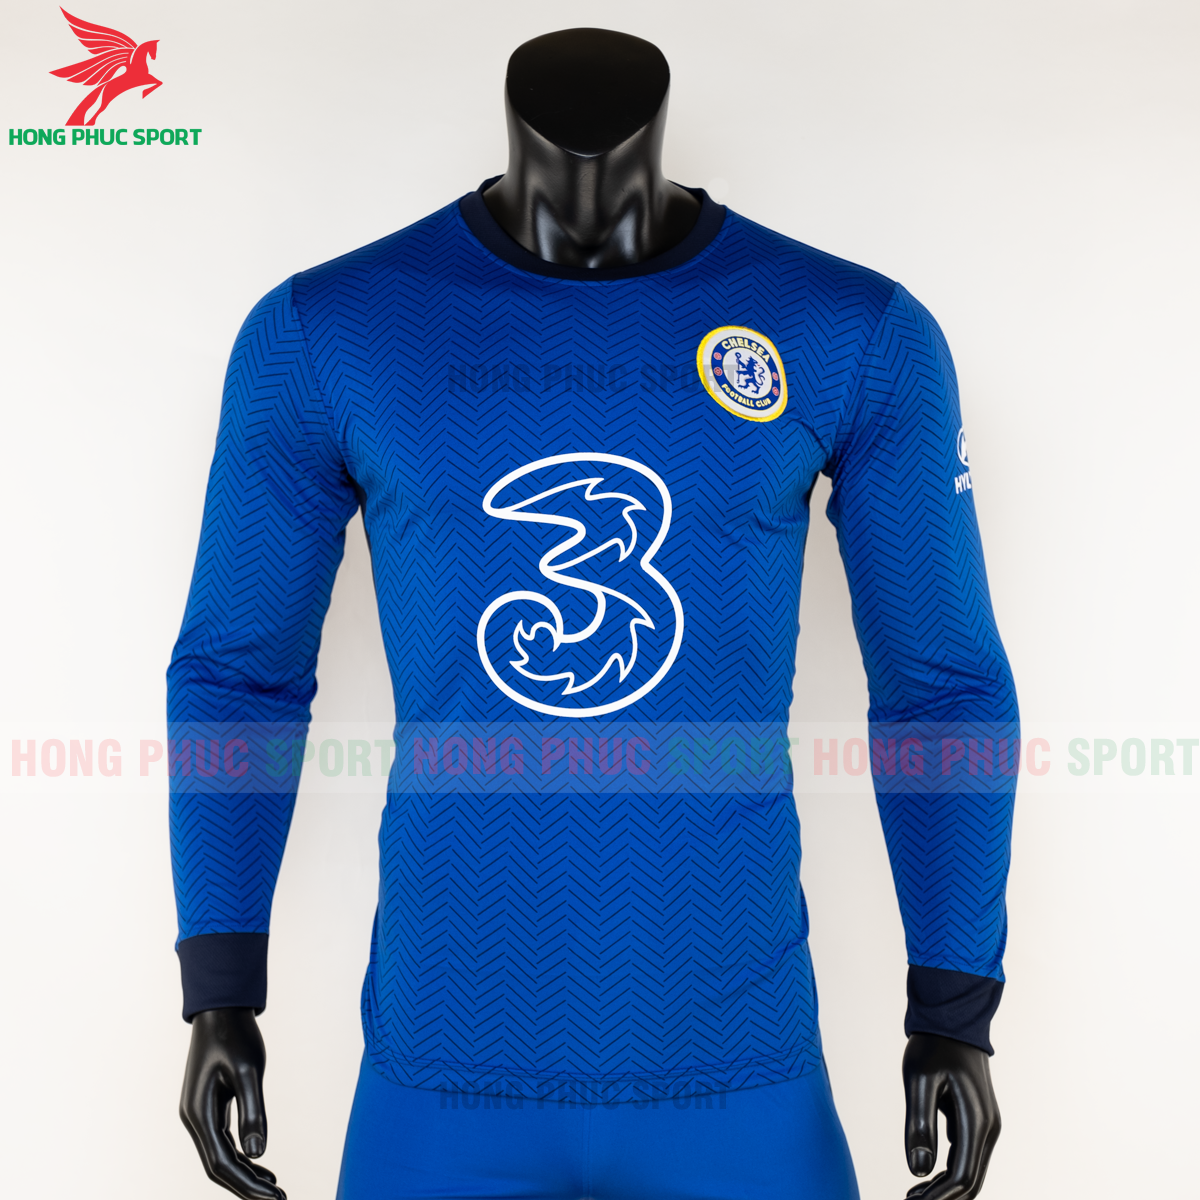 https://cdn.hongphucsport.com/unsafe/s4.shopbay.vn/files/285/ao-dai-tay-chelsea-2020-san-nha-1-5f8fbc9e8e228.png